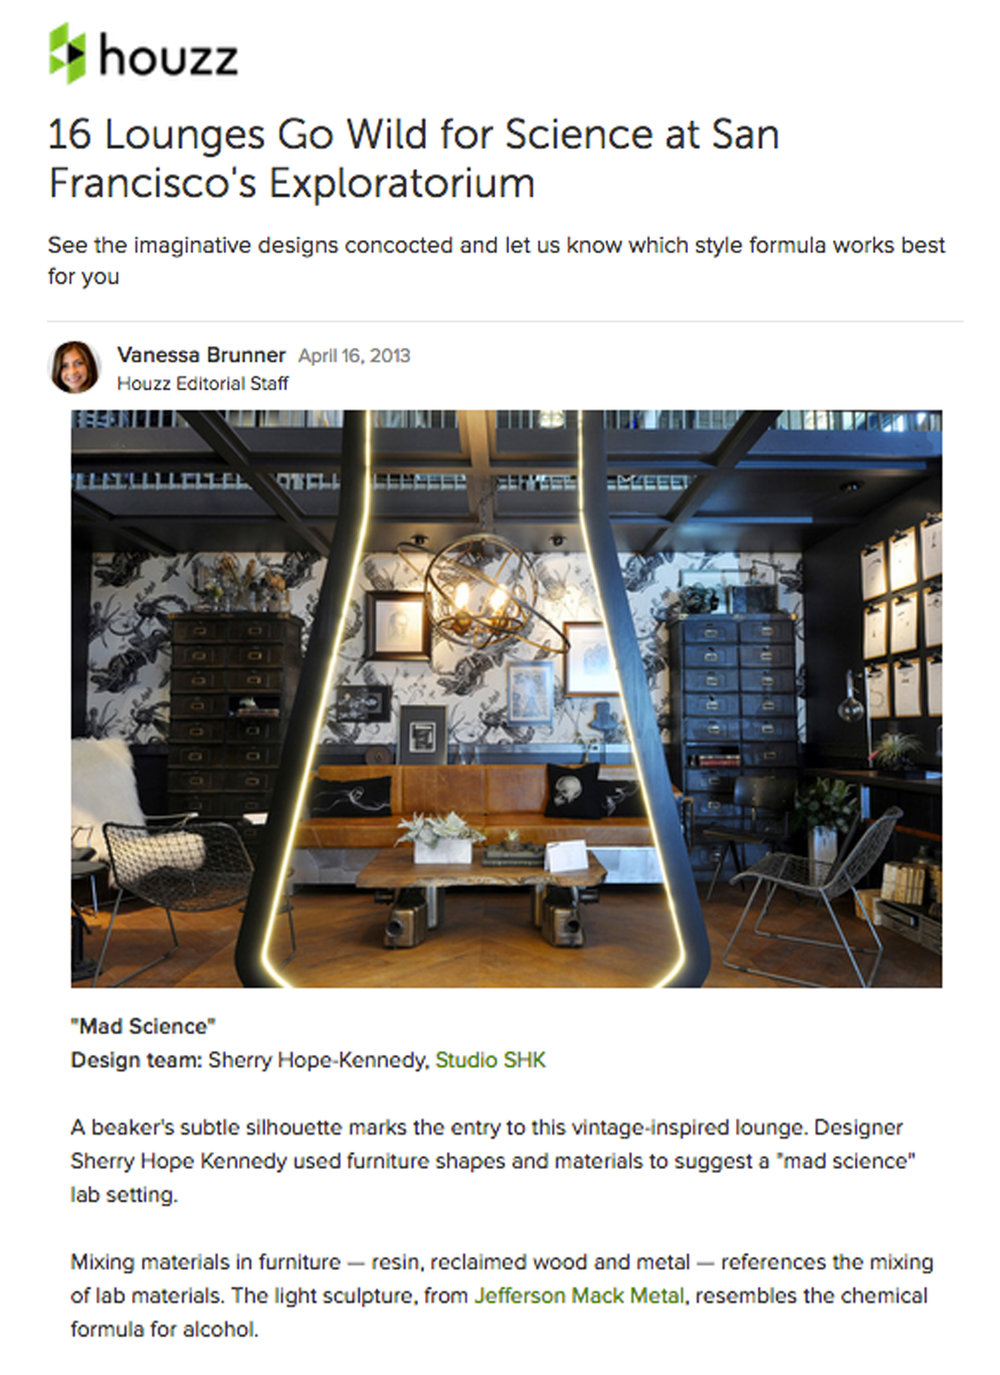 Houzz - Houzz spotlights Sherry's space at the Exploratorium Designer Showcase. Link: http://bit.ly/2qUDPks